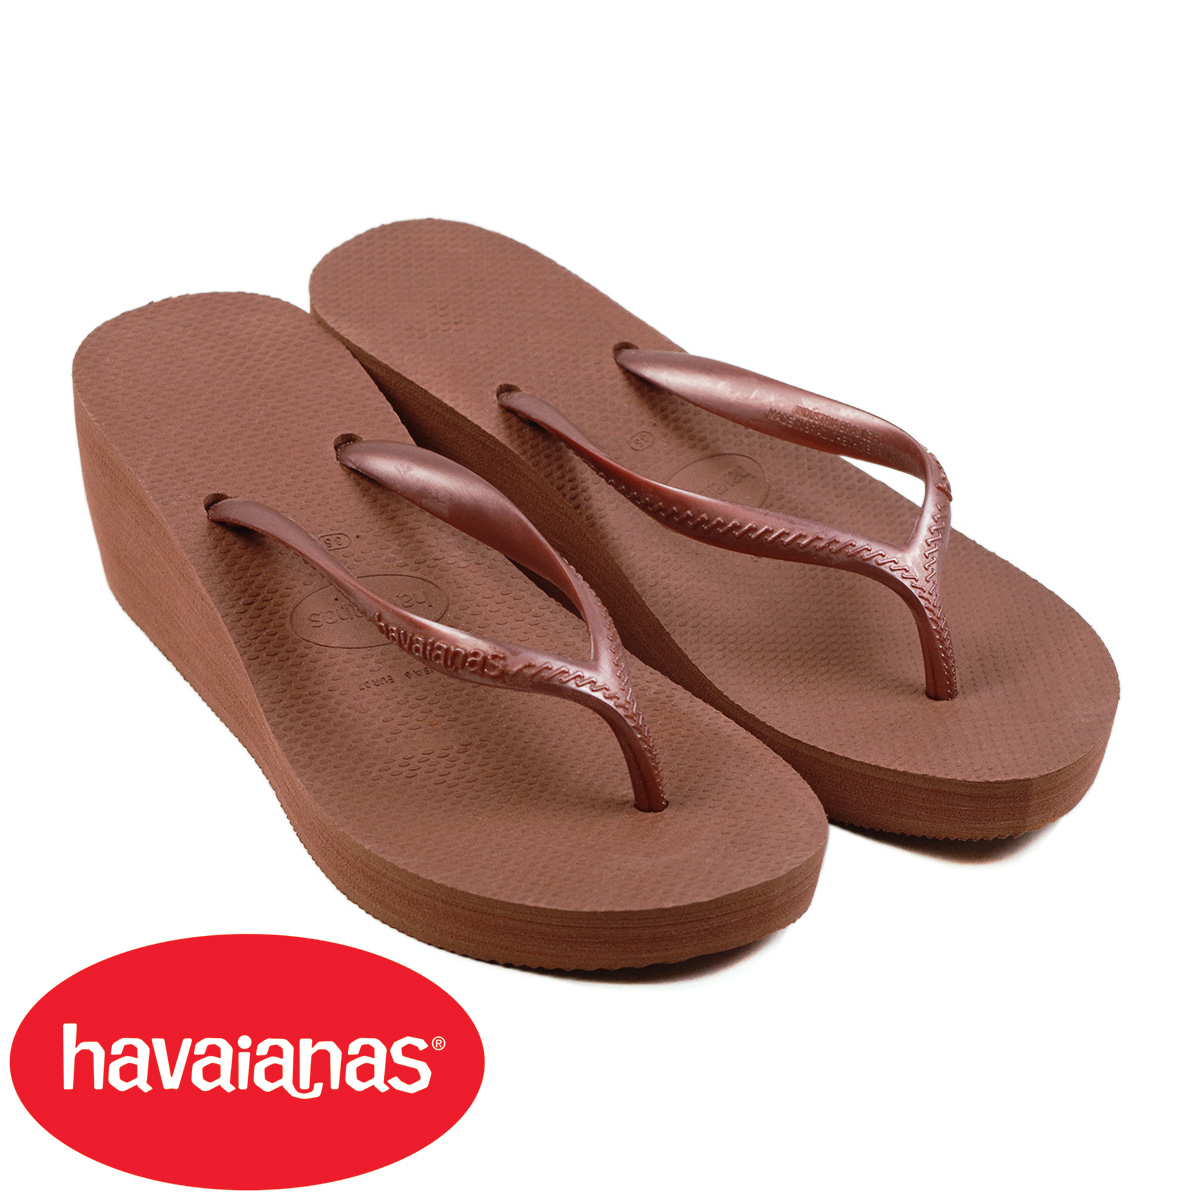 76a93748c Hawaiian announcers havaianas Lady s beach sandal high style bronze nude  (for the HIGH FASHION B sun wedge sole thickness bottom woman)